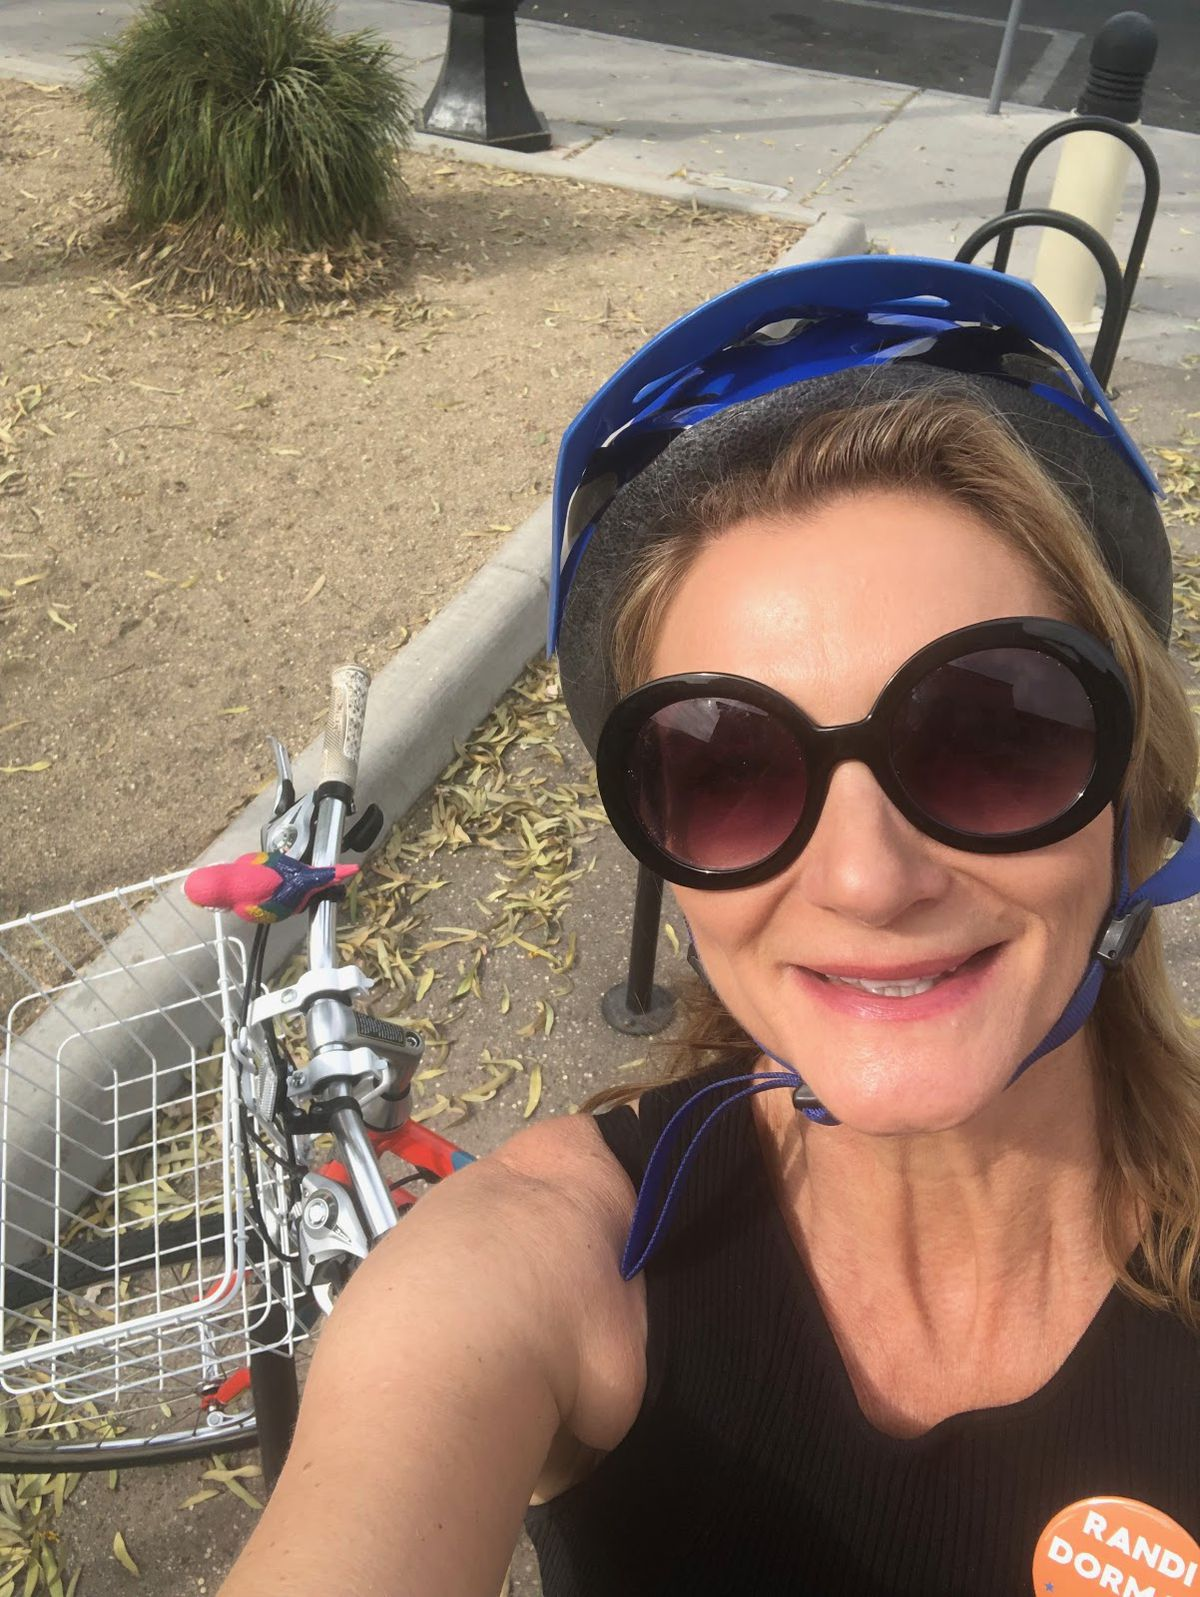 A middle-aged woman wearing a blue bike helmet poses with her orange bike.